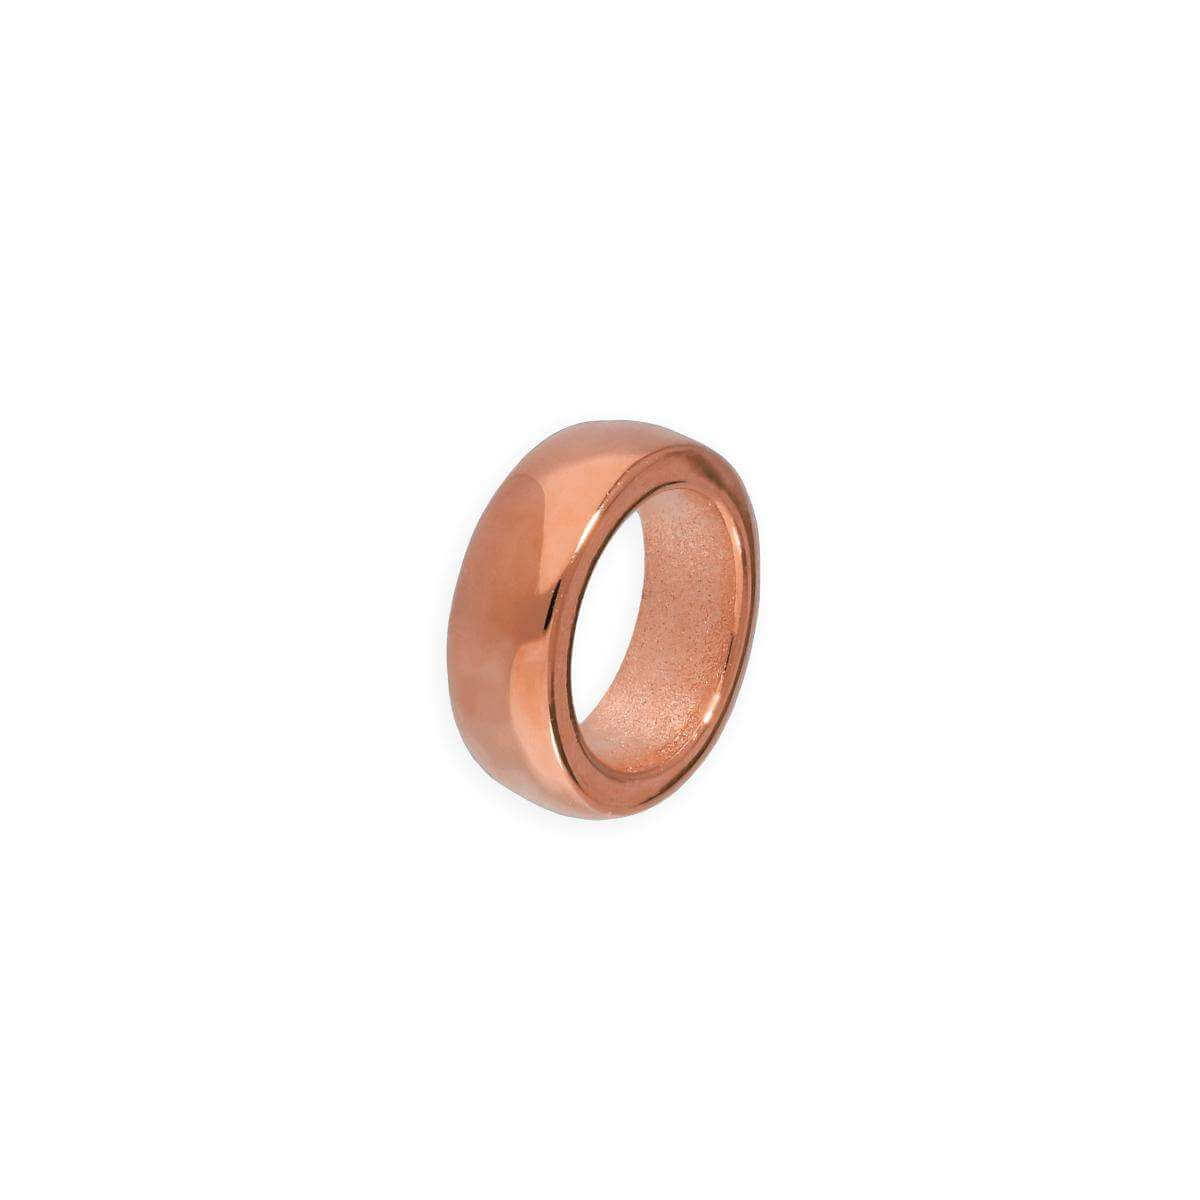 Rose Gold Plated Sterling Silver 2mm Plain Polished Round Ring Bead